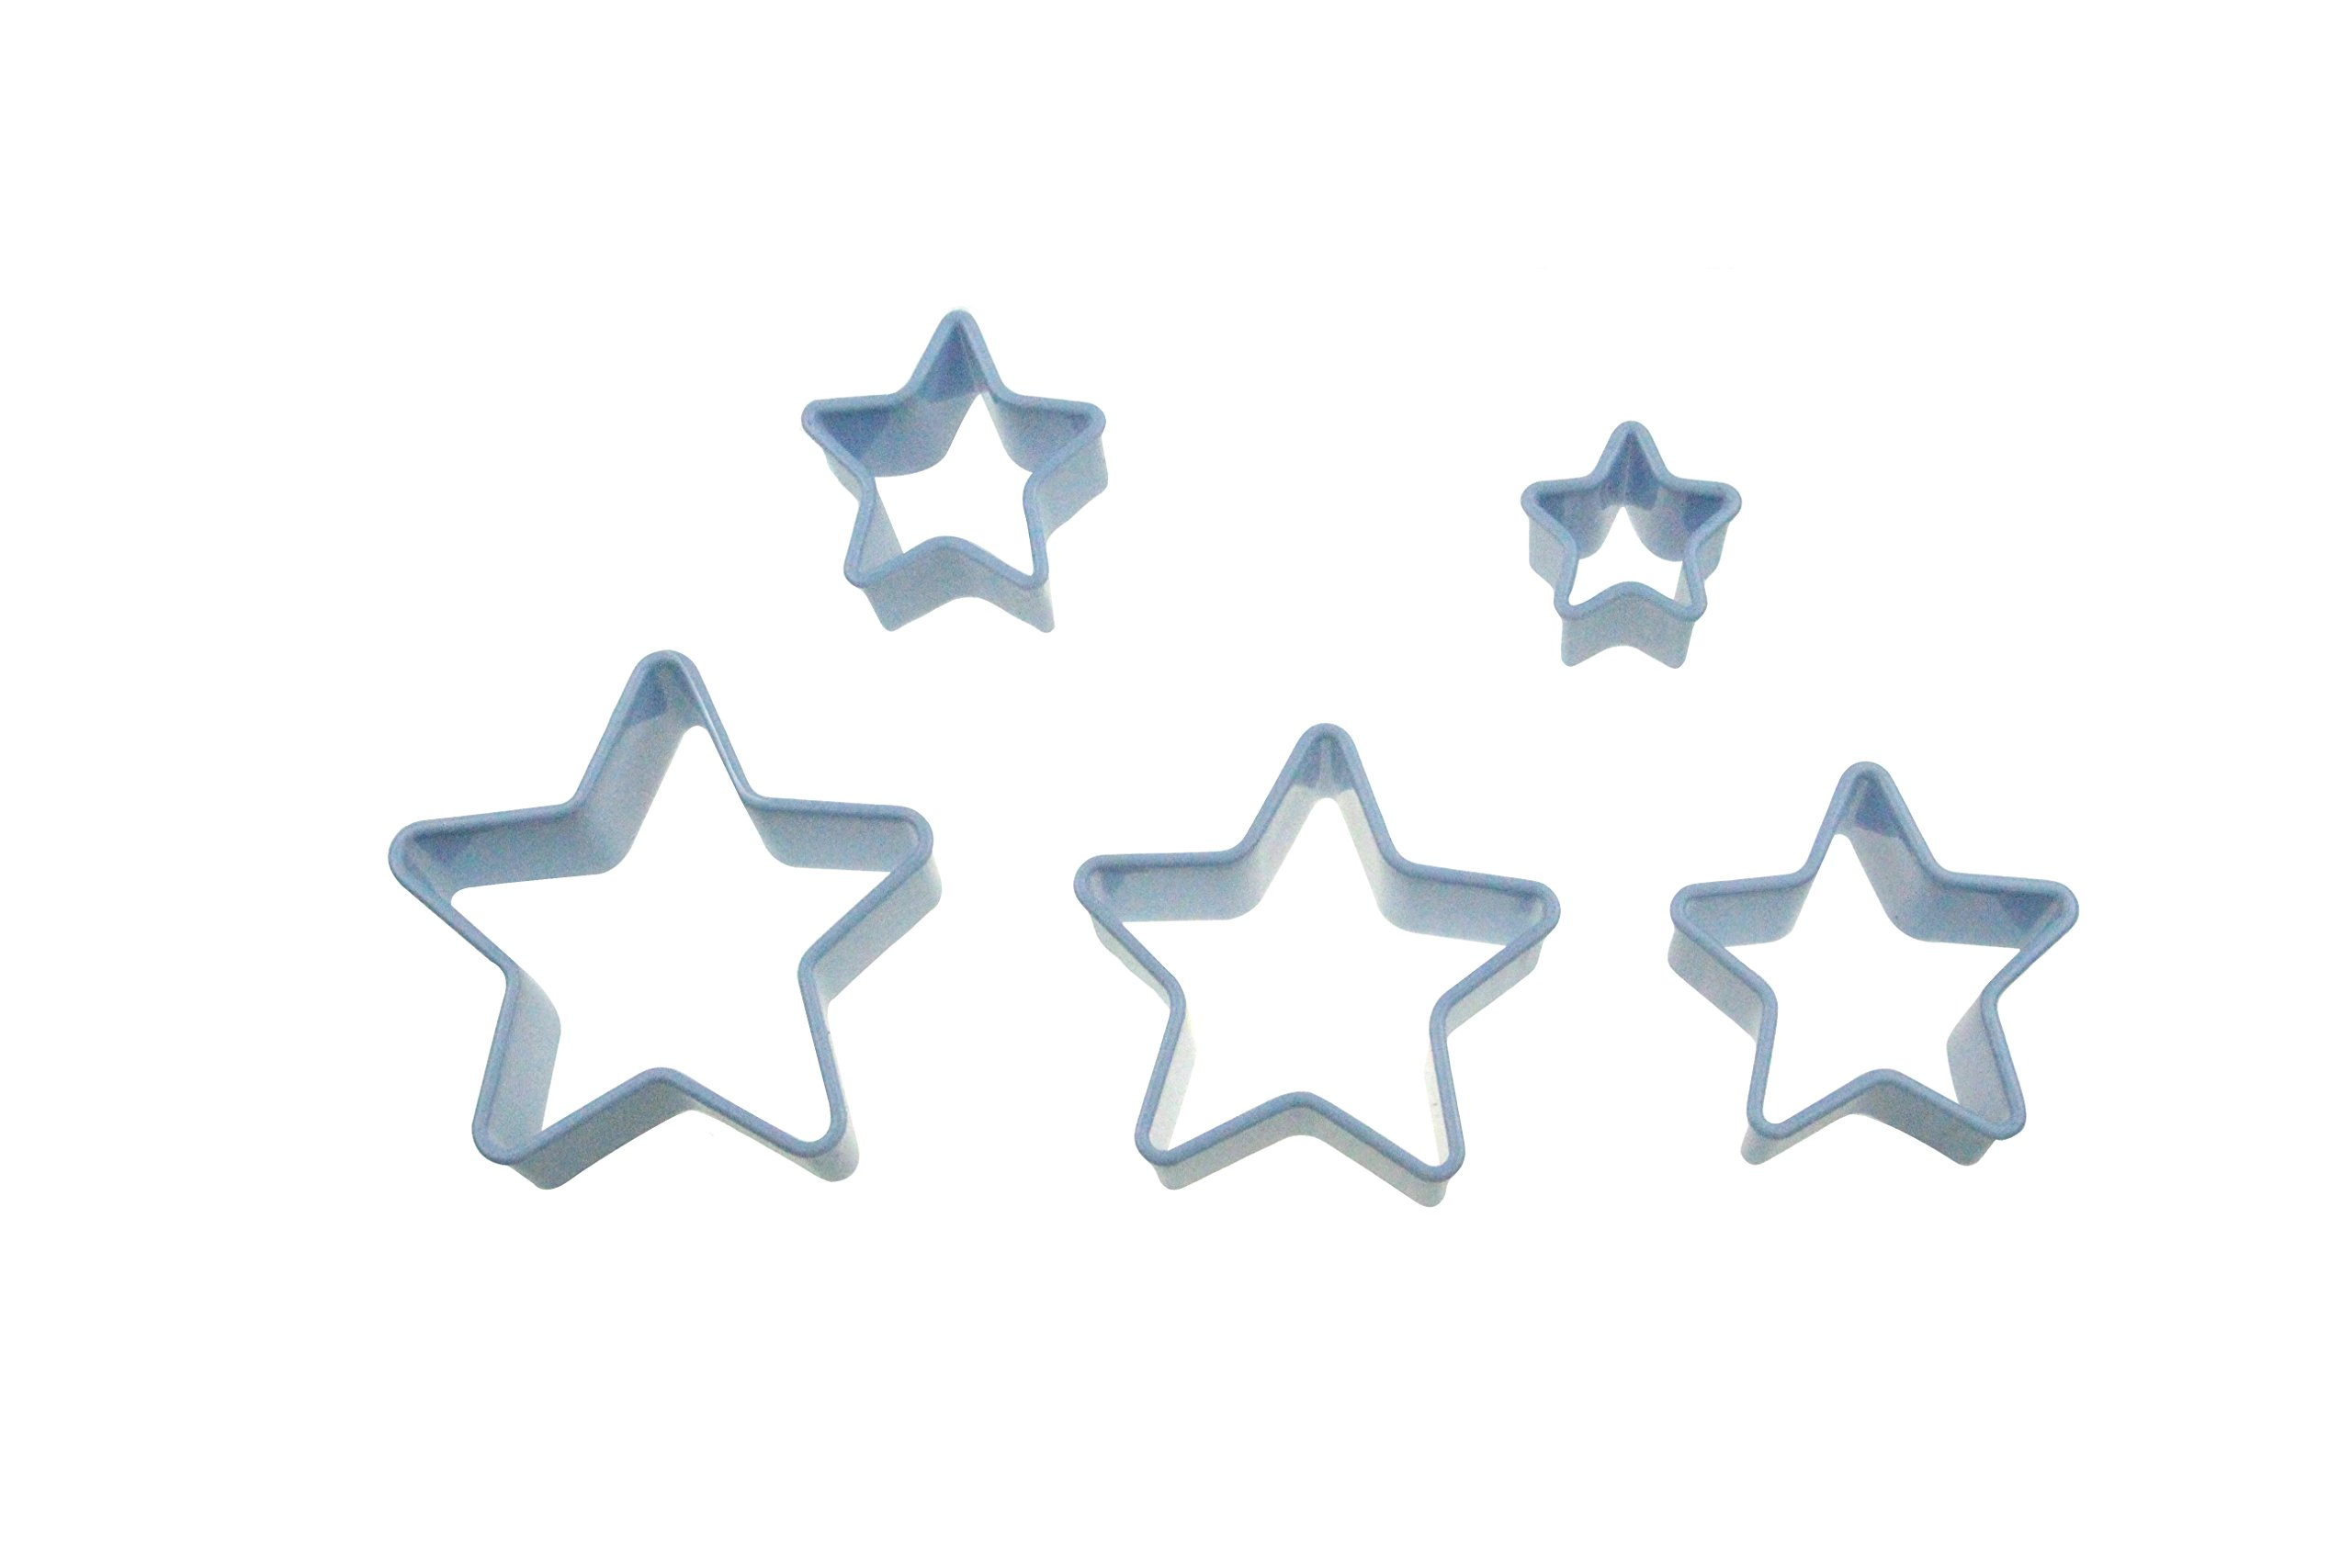 ShengHai Star Cookie Cutter Set, 5-Piece Plastic Stars Cutters, Multi-size Durable Star-shaped Biscuit Fondant Cutter Set Shapes Fruit Cutter for Kids (Light Blue)